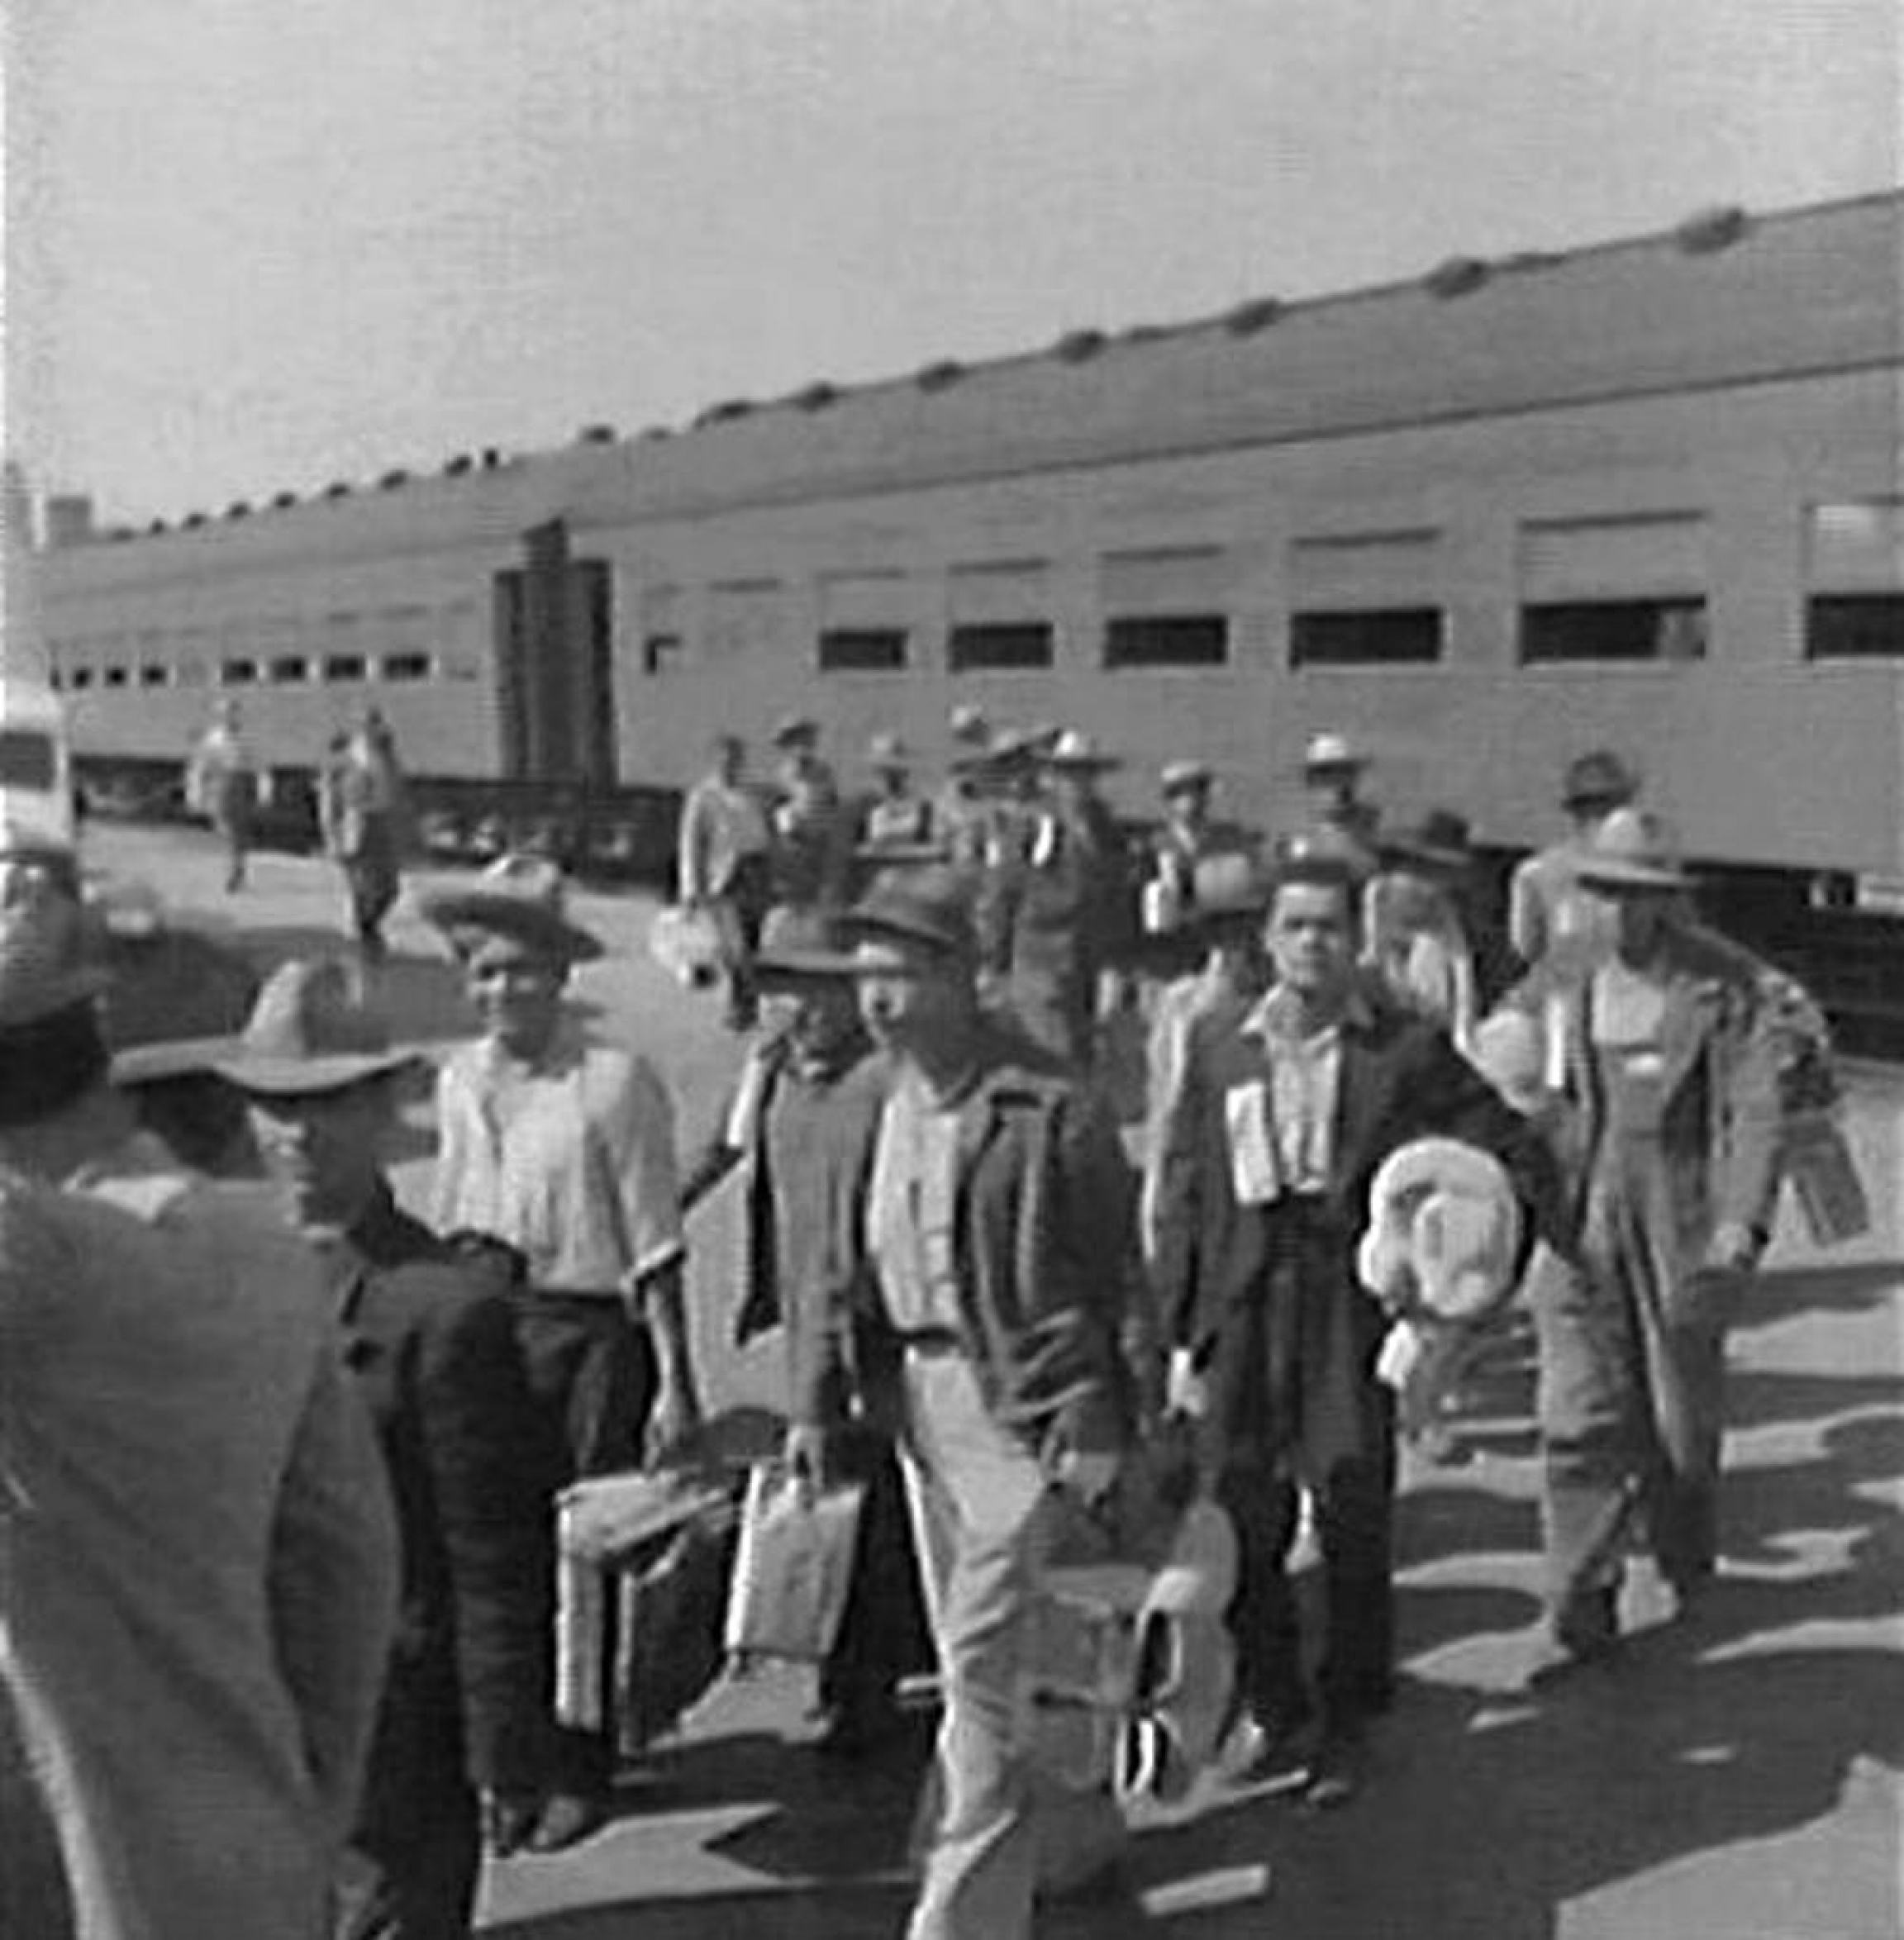 Mexican migrants during the Bracero program.